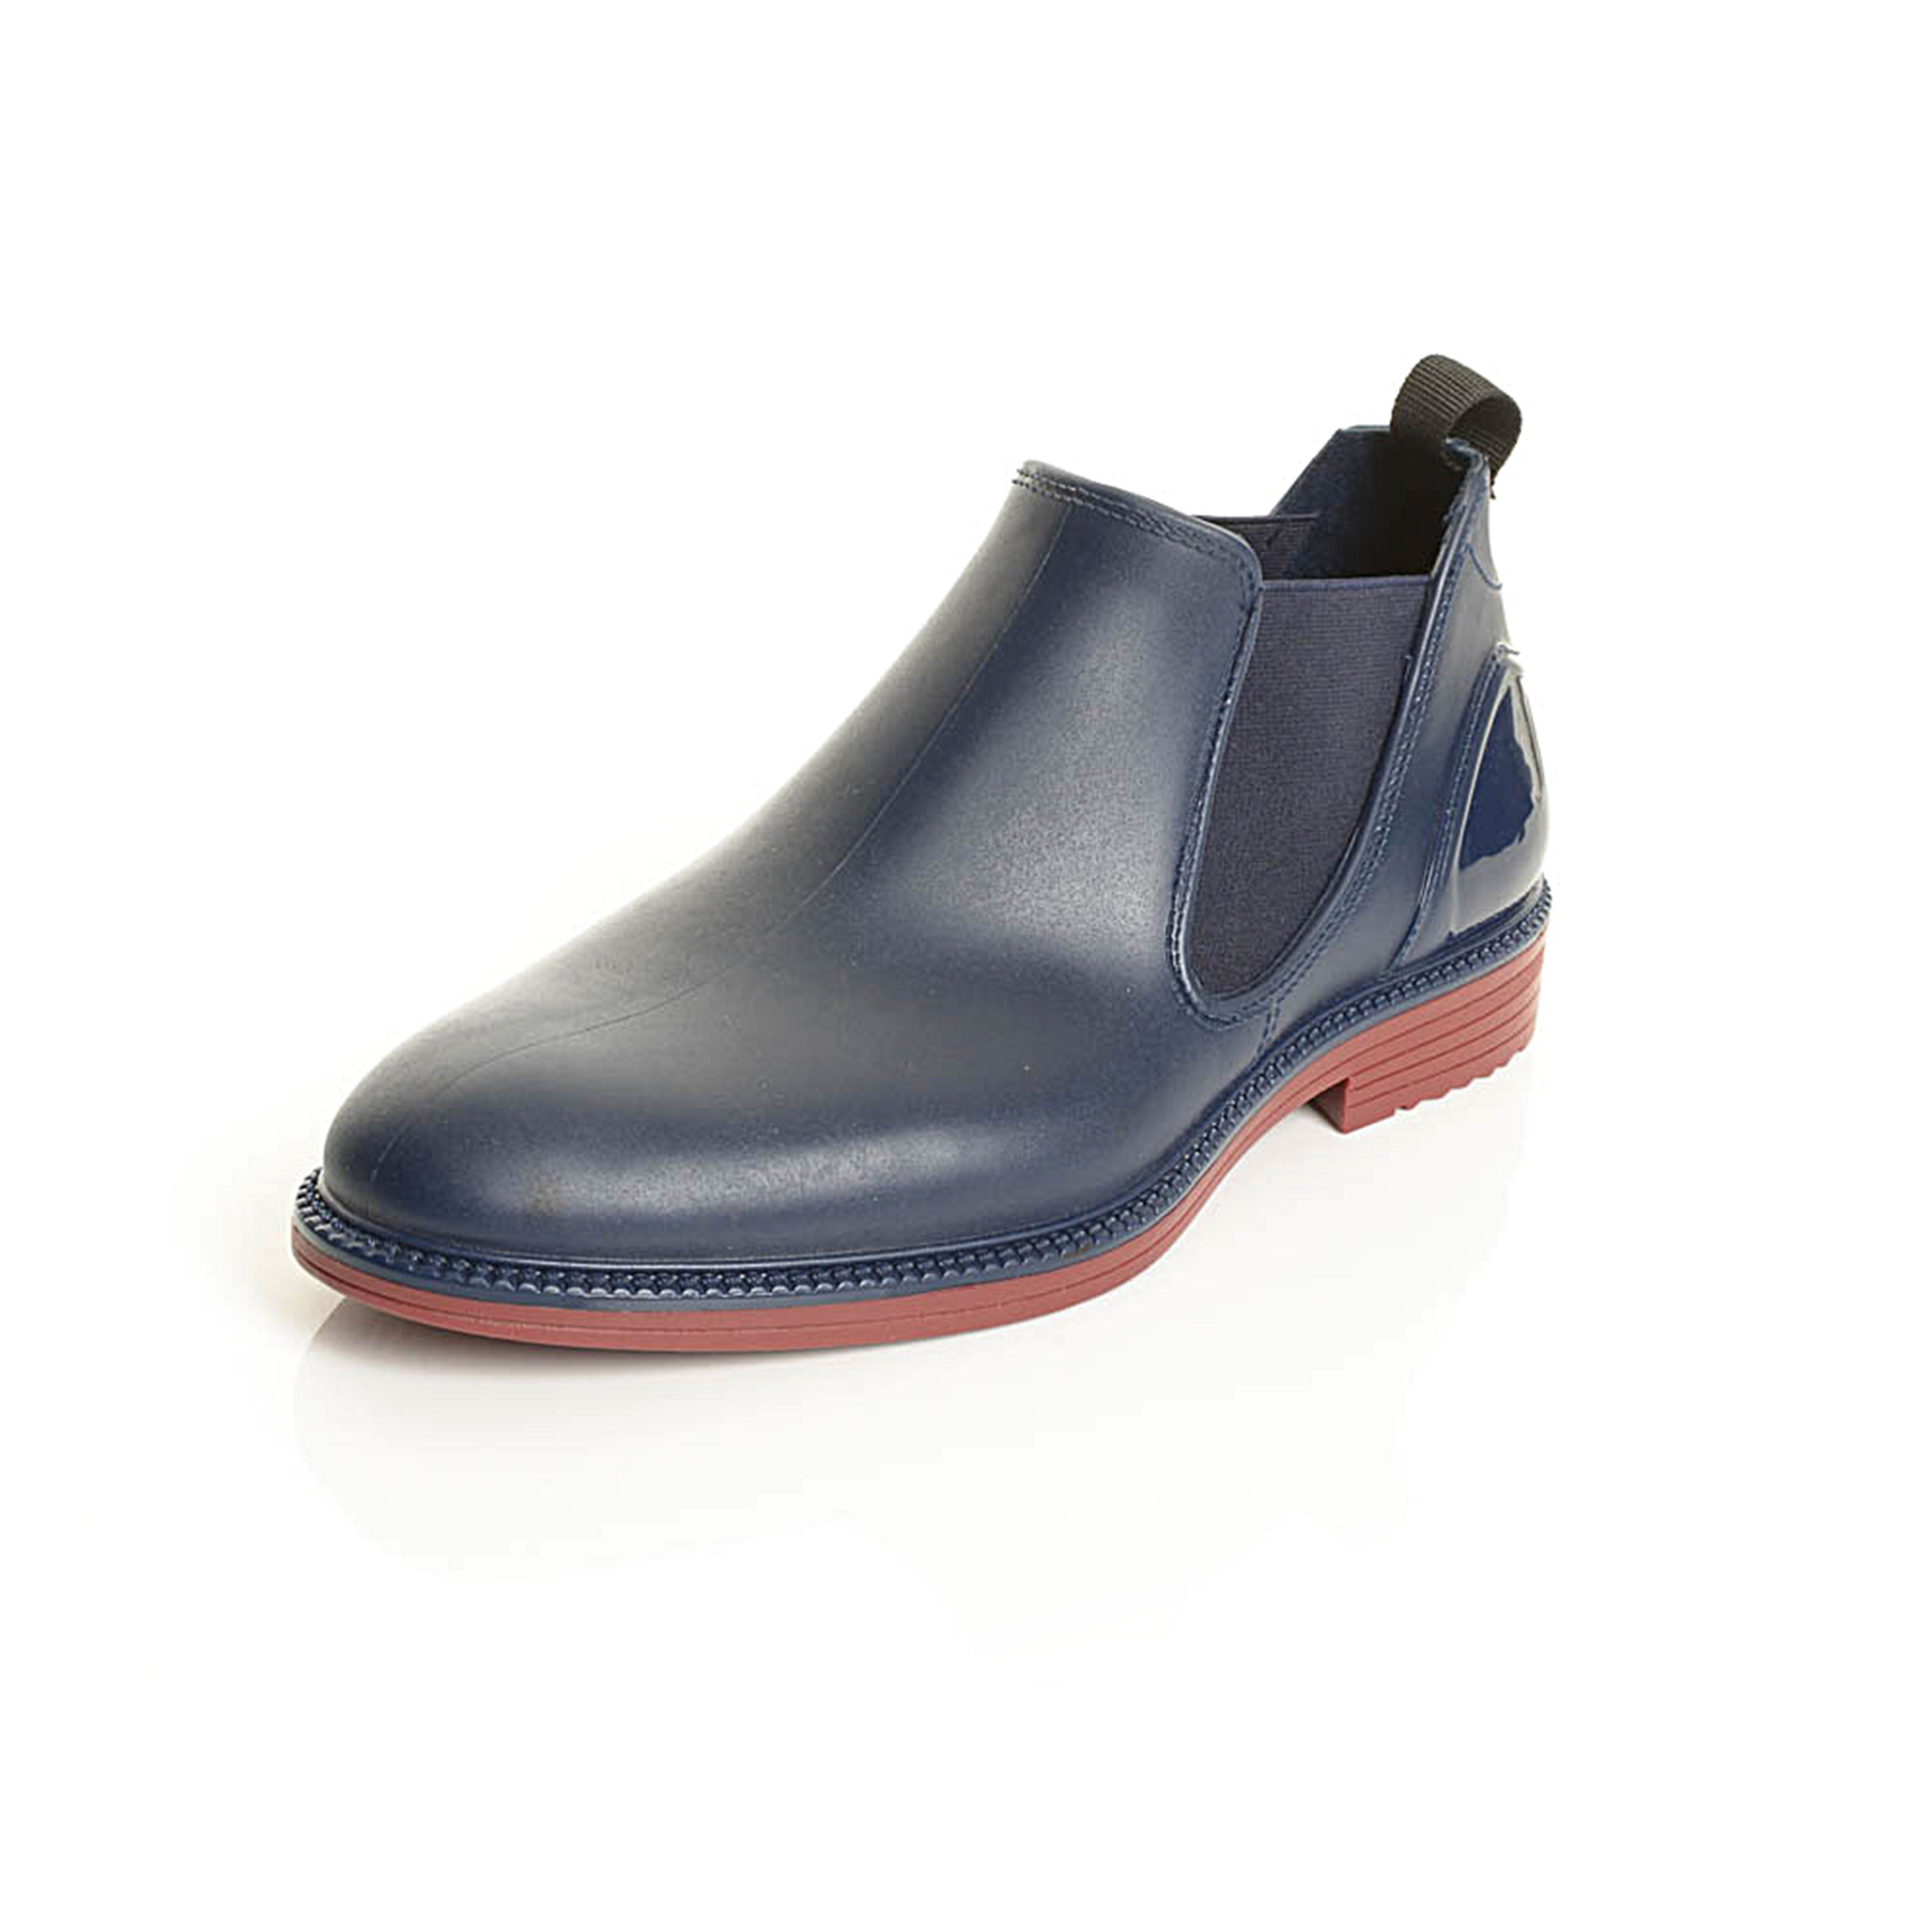 Shop Solo Men's Black Rubber Slip-on Ankle Boots - Free Shipping Today -  Overstock.com - 13787141